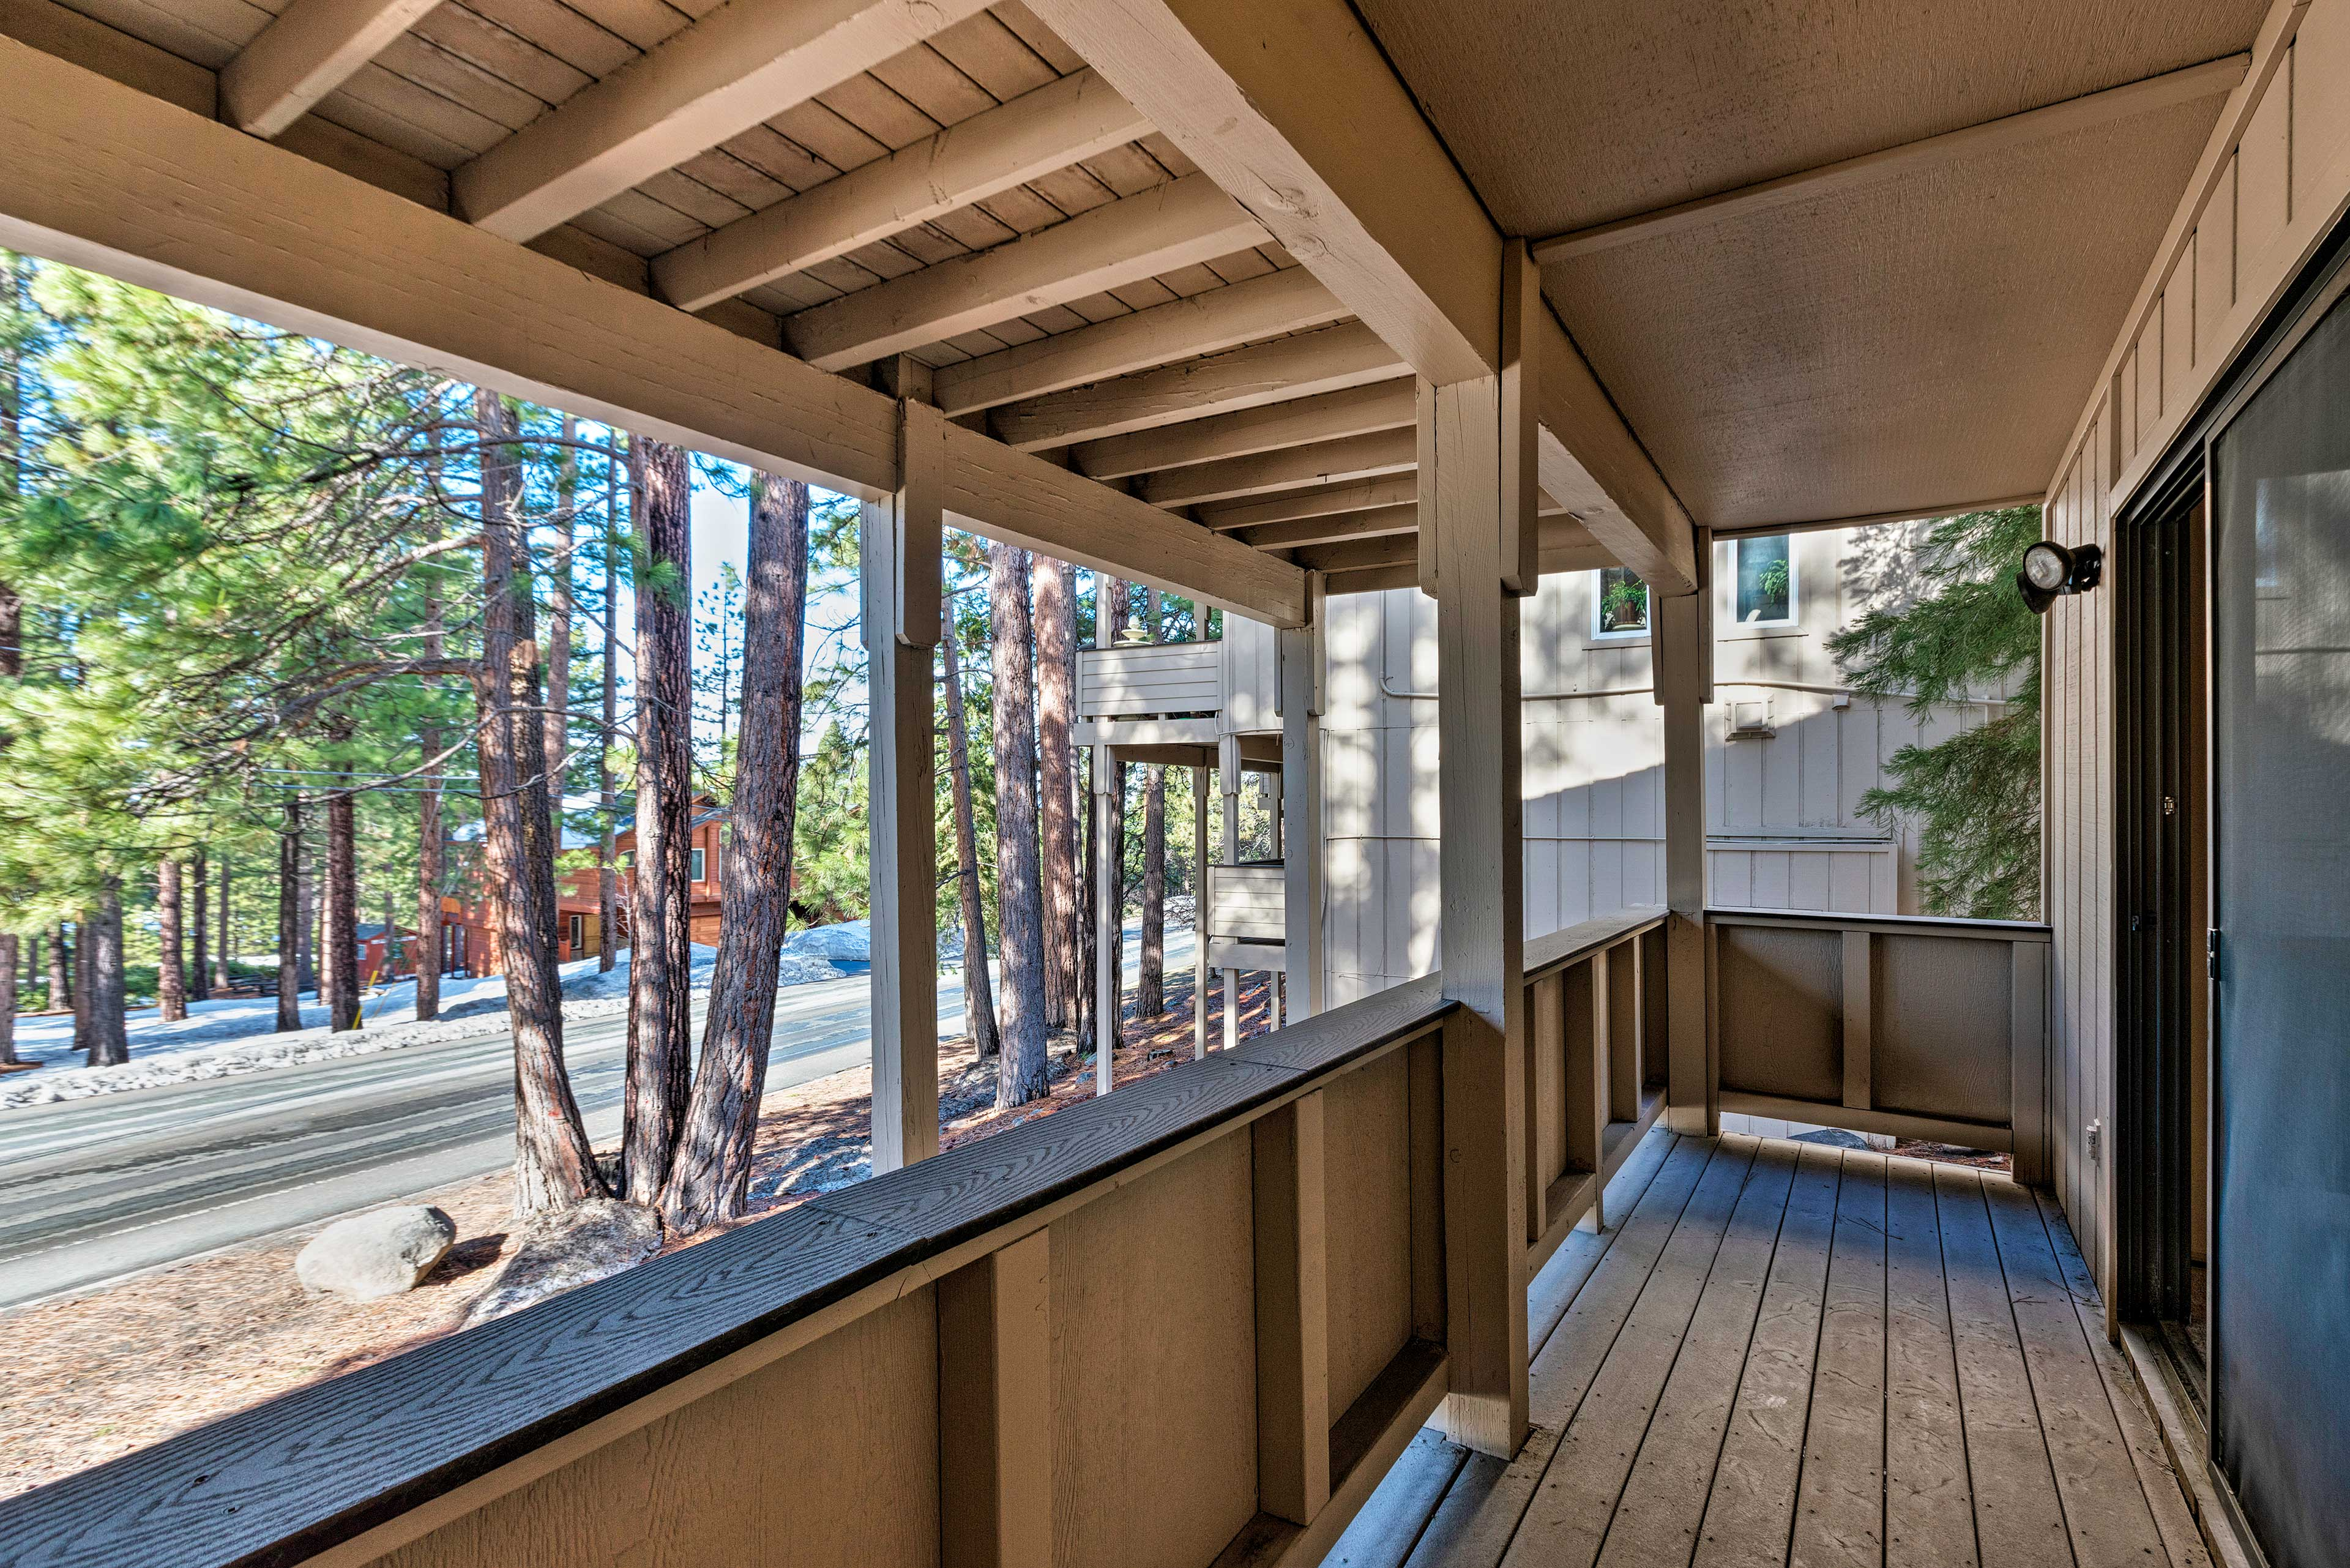 Enjoy the fresh air and wooded views from the deck.